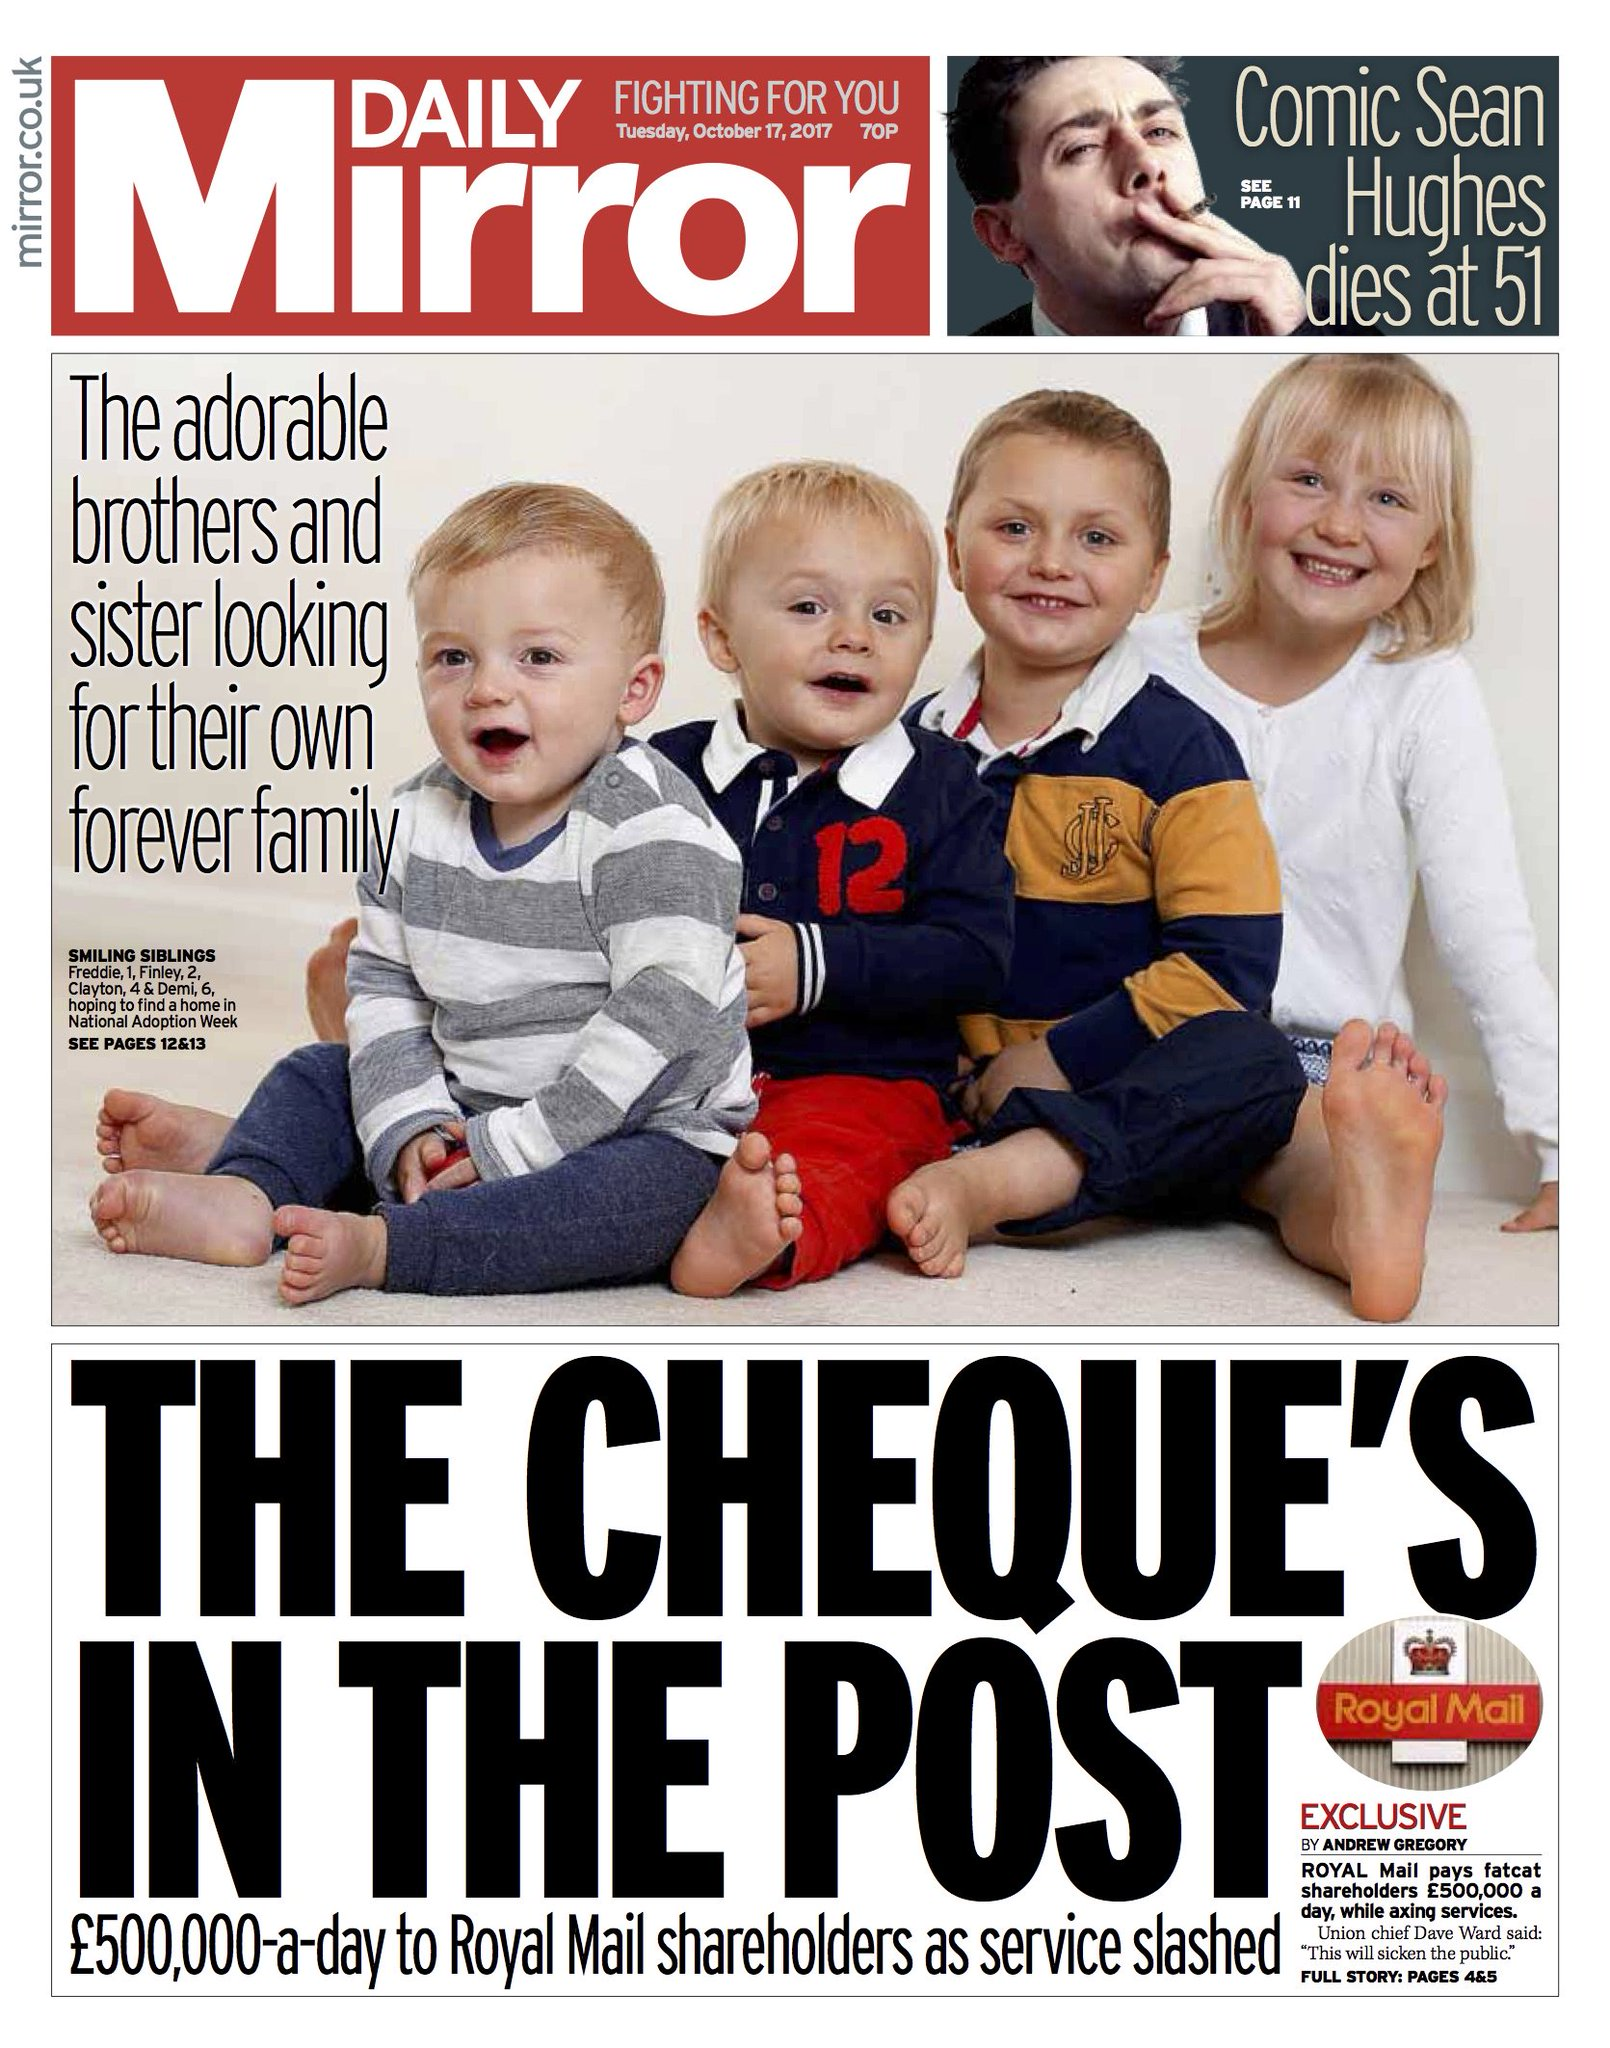 RT @DailyMirror: Tomorrow's front page: The cheque's in the post #tomorrowspaperstoday https://t.co/uvVDDGi5Mt https://t.co/Niq1JnLKTV